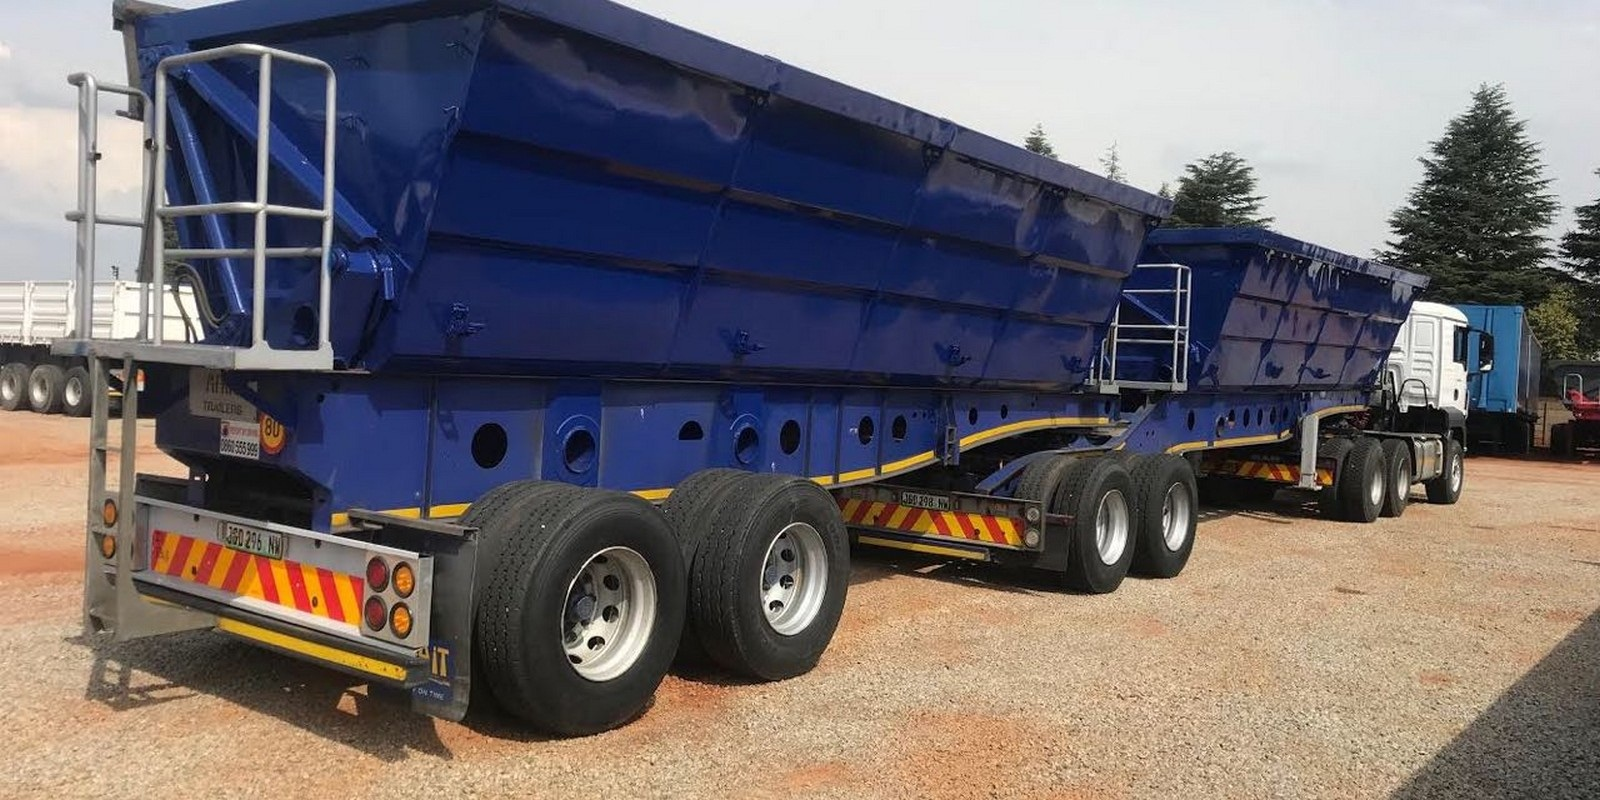 Start Your Own Trucking Business, 34 Ton Side Tippers, Become A Trucker, Johannesburg, Gauteng Province, South Africa